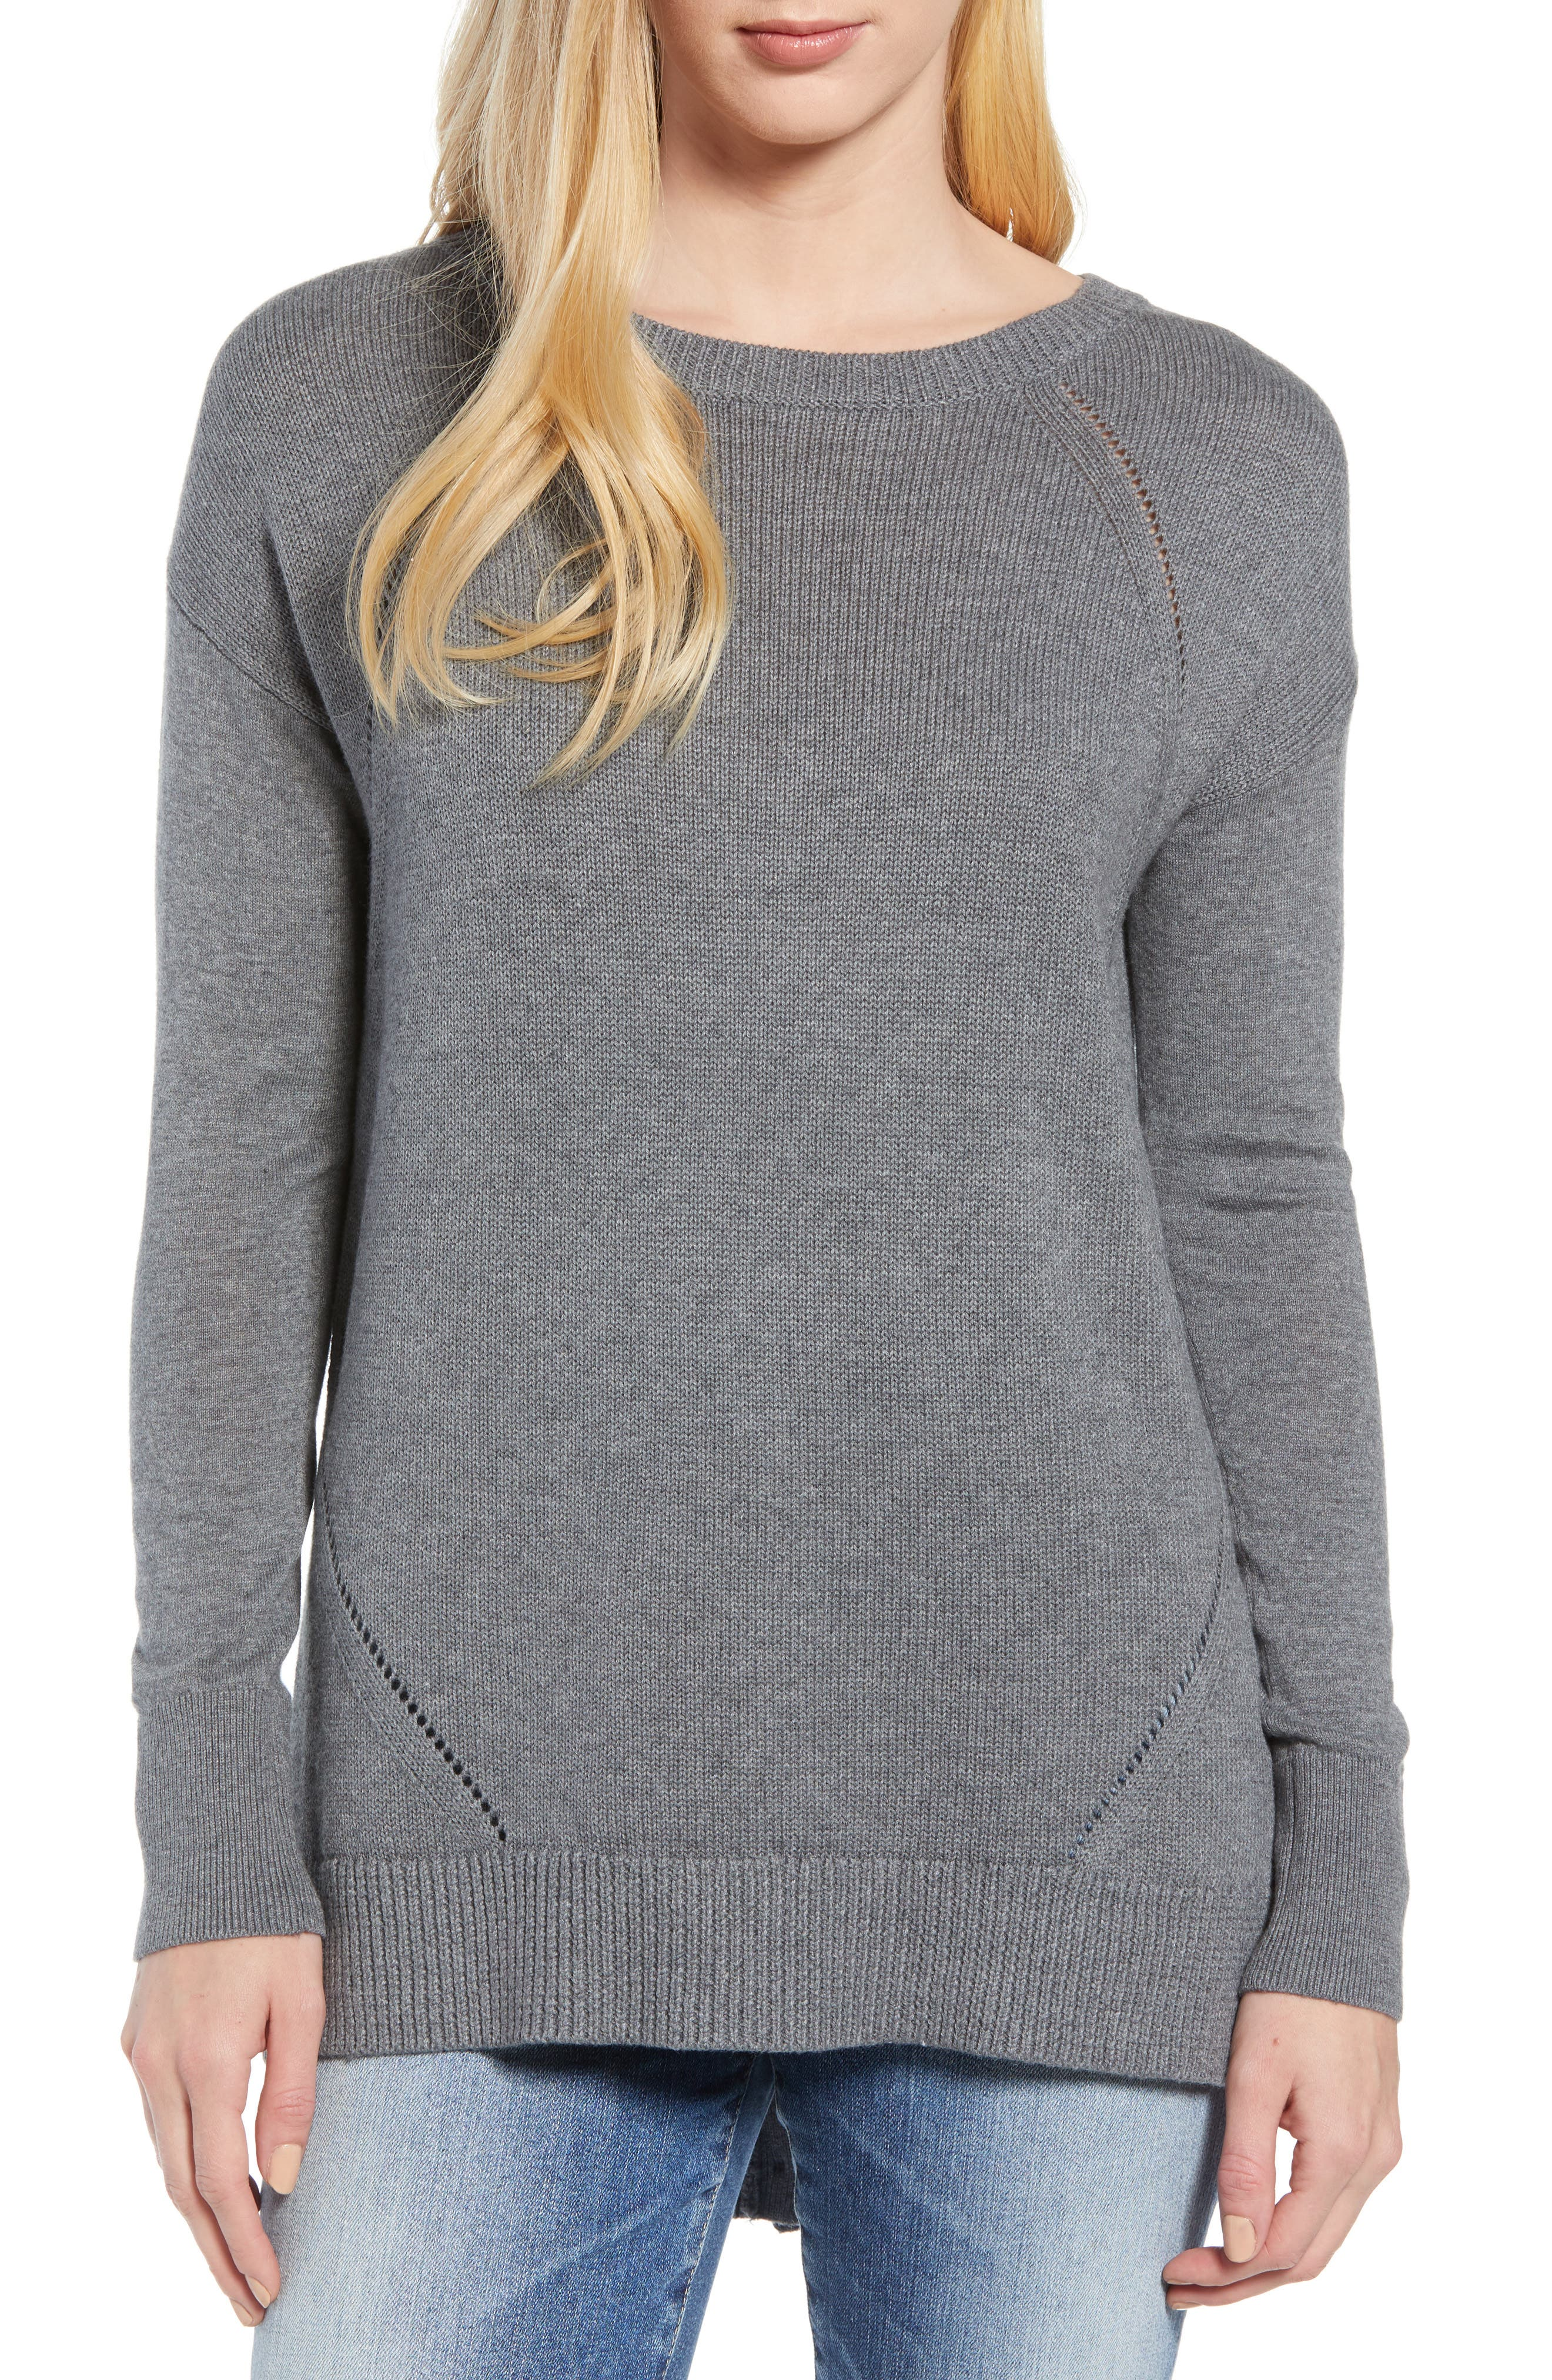 Button Back Tunic Sweater,                             Main thumbnail 1, color,                             GREY DARK HEATHER